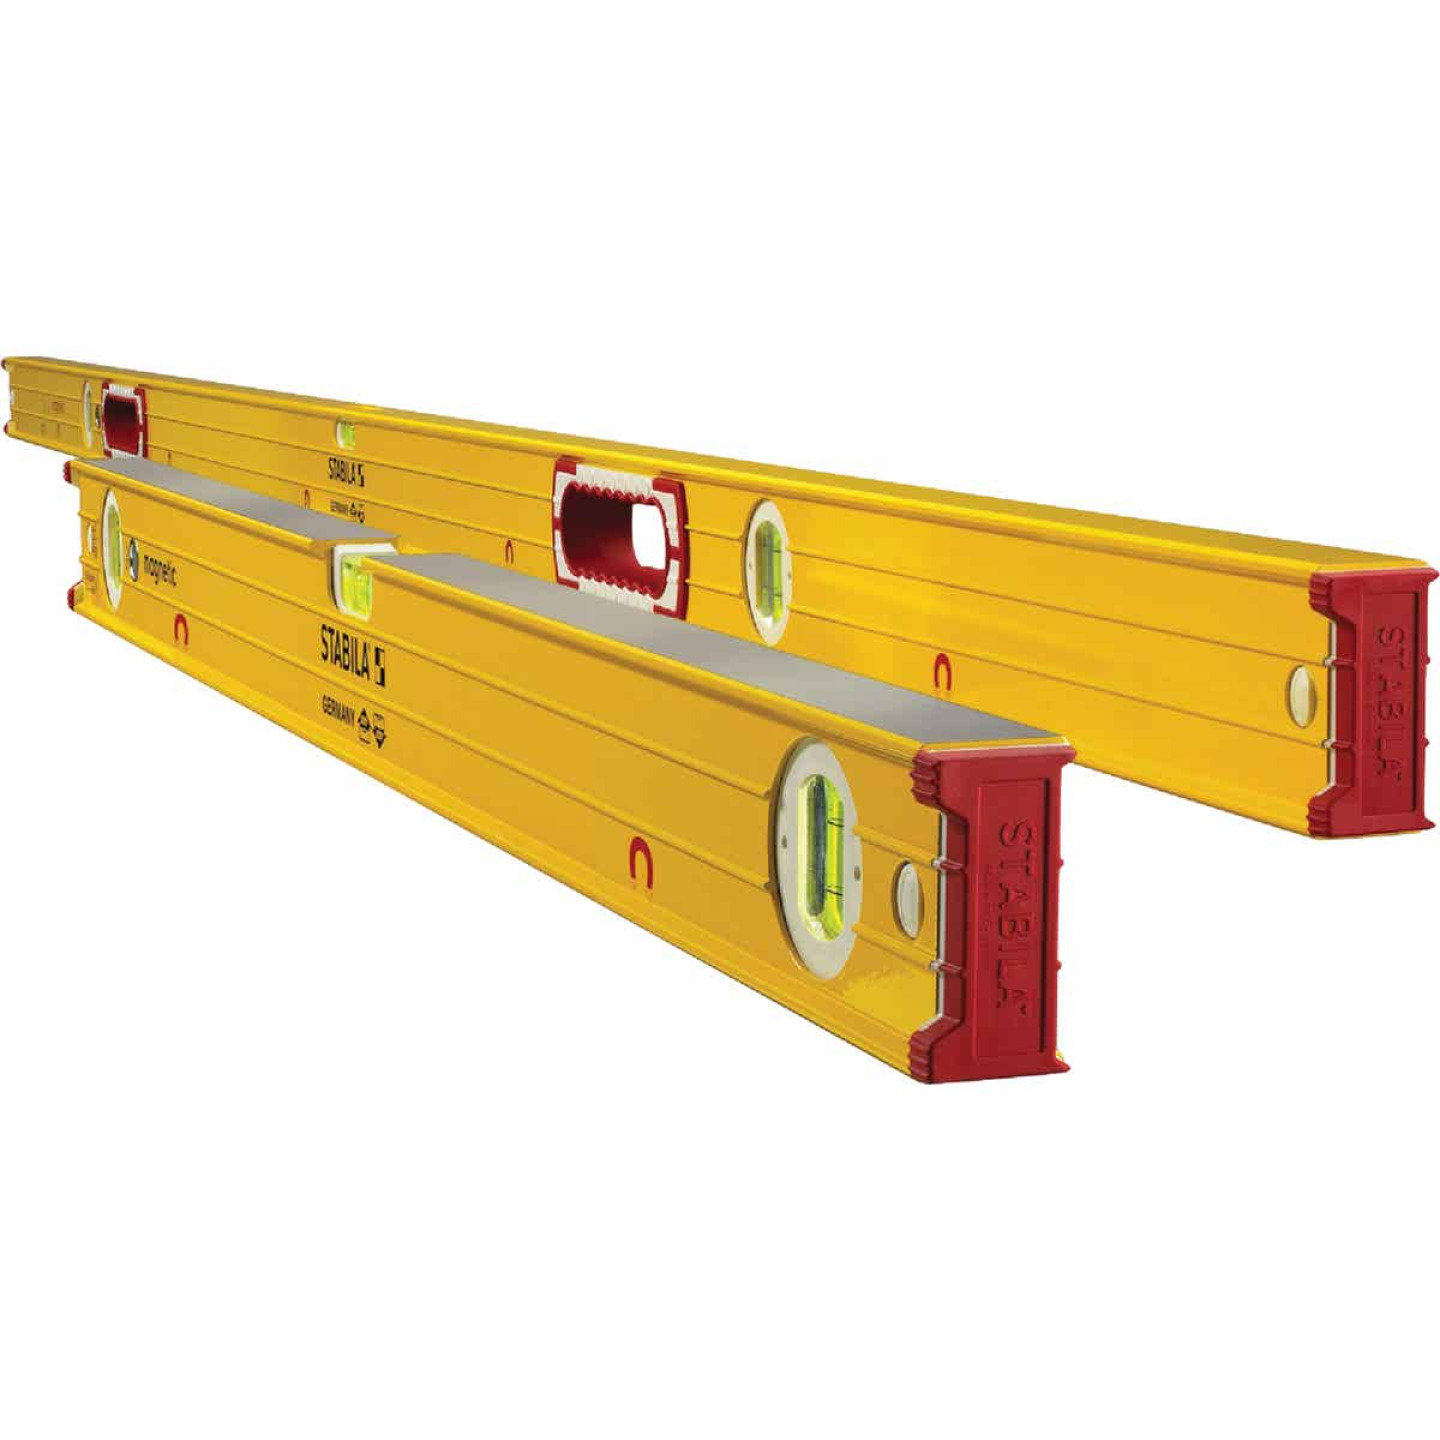 Stabila 78 In. and 32 In. Aluminum Magnetic Box Level 2 Piece Set Image 1